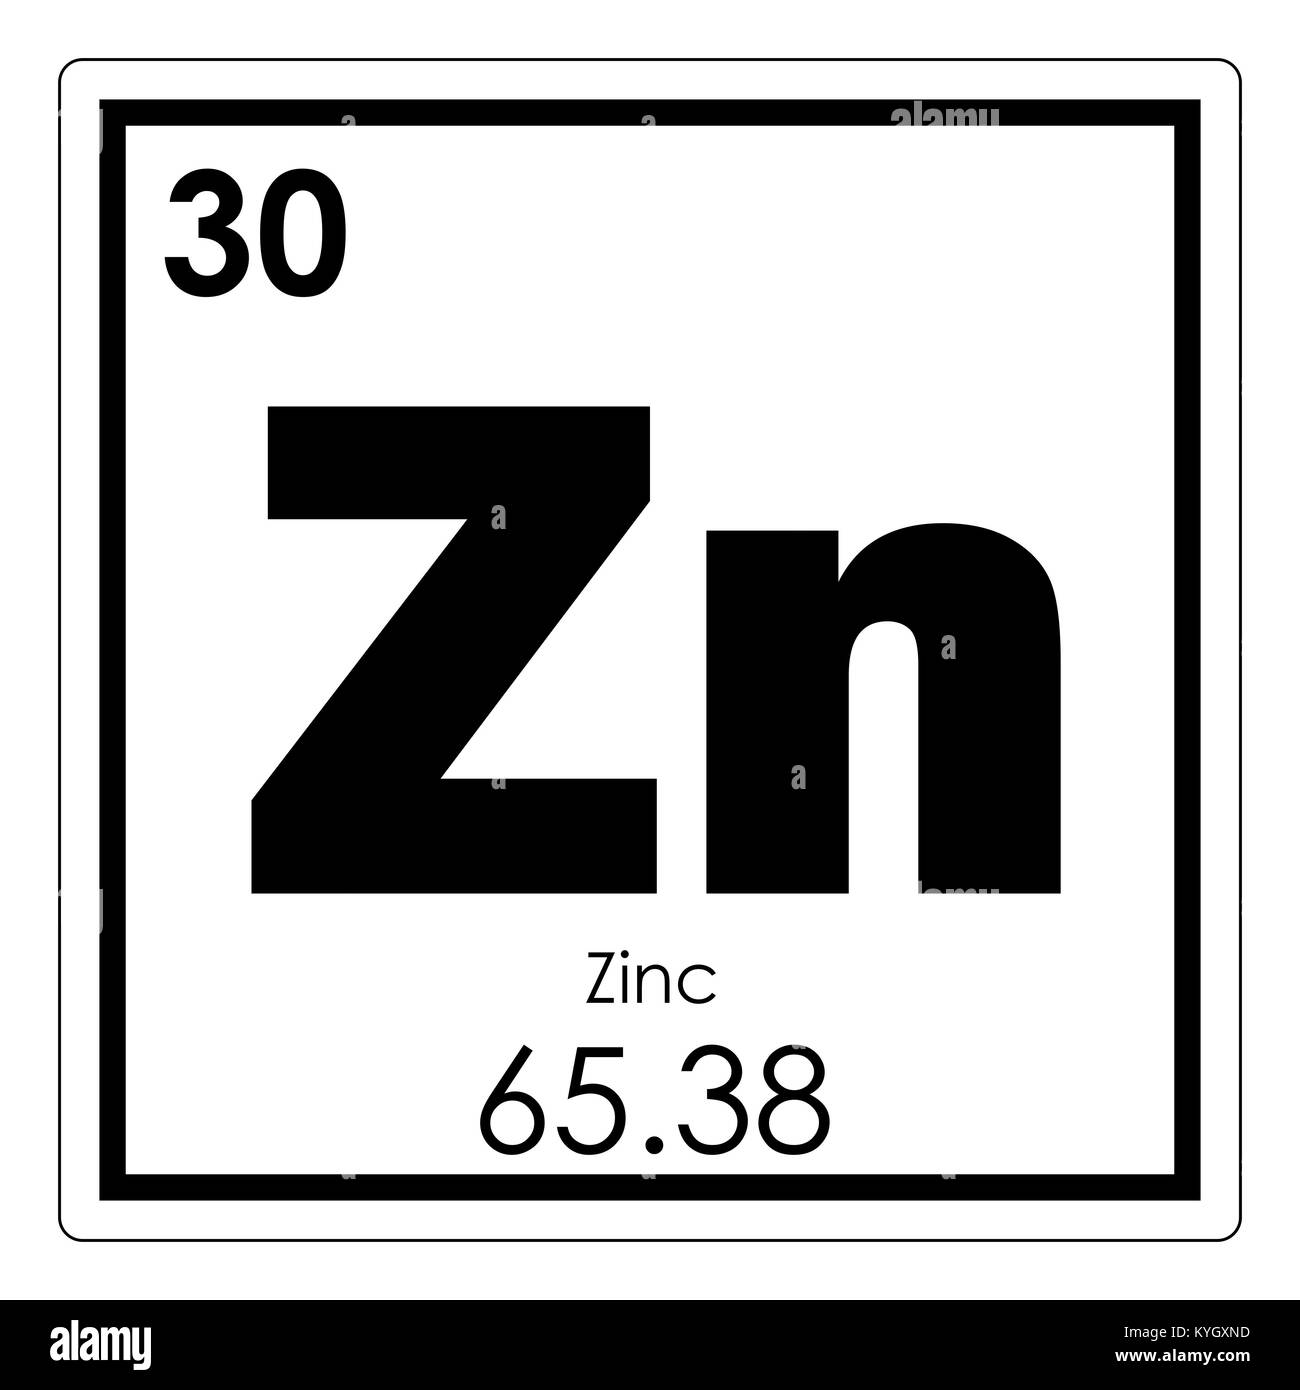 Zinc chemical element stock photos zinc chemical element stock zinc chemical element periodic table science symbol stock image urtaz Choice Image